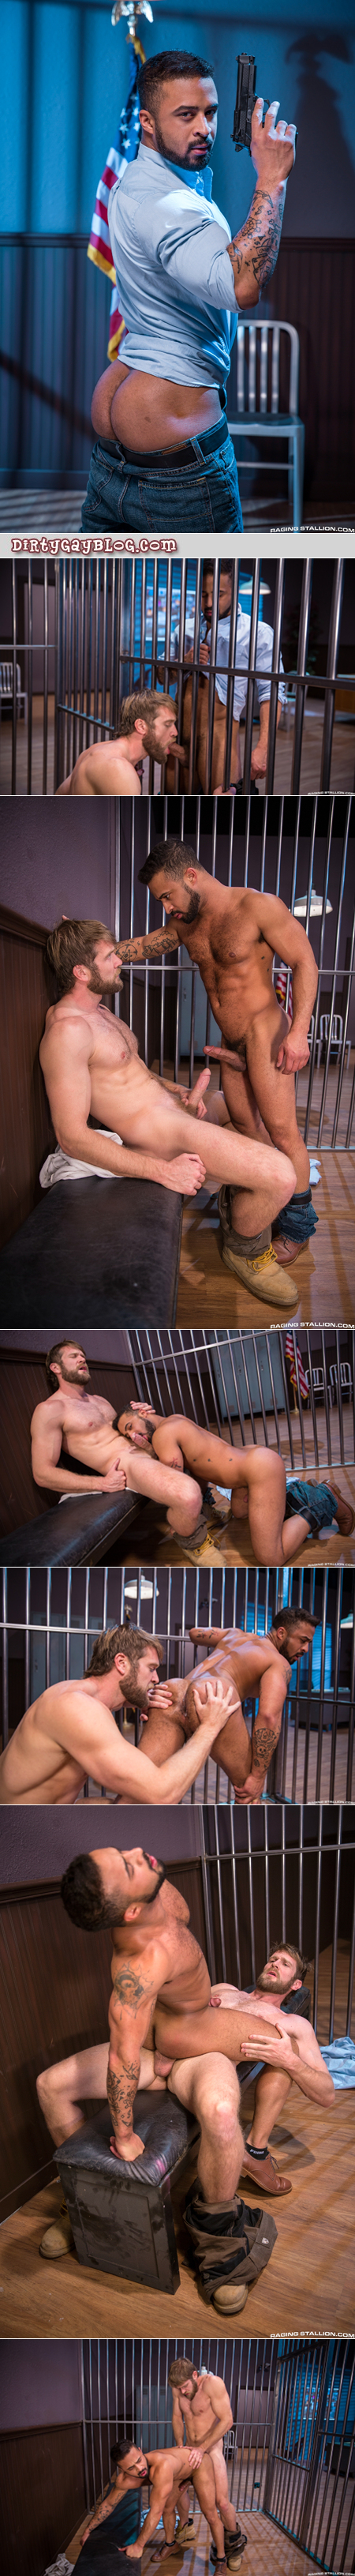 Hairy, muscular ginger having gay sex in jail.